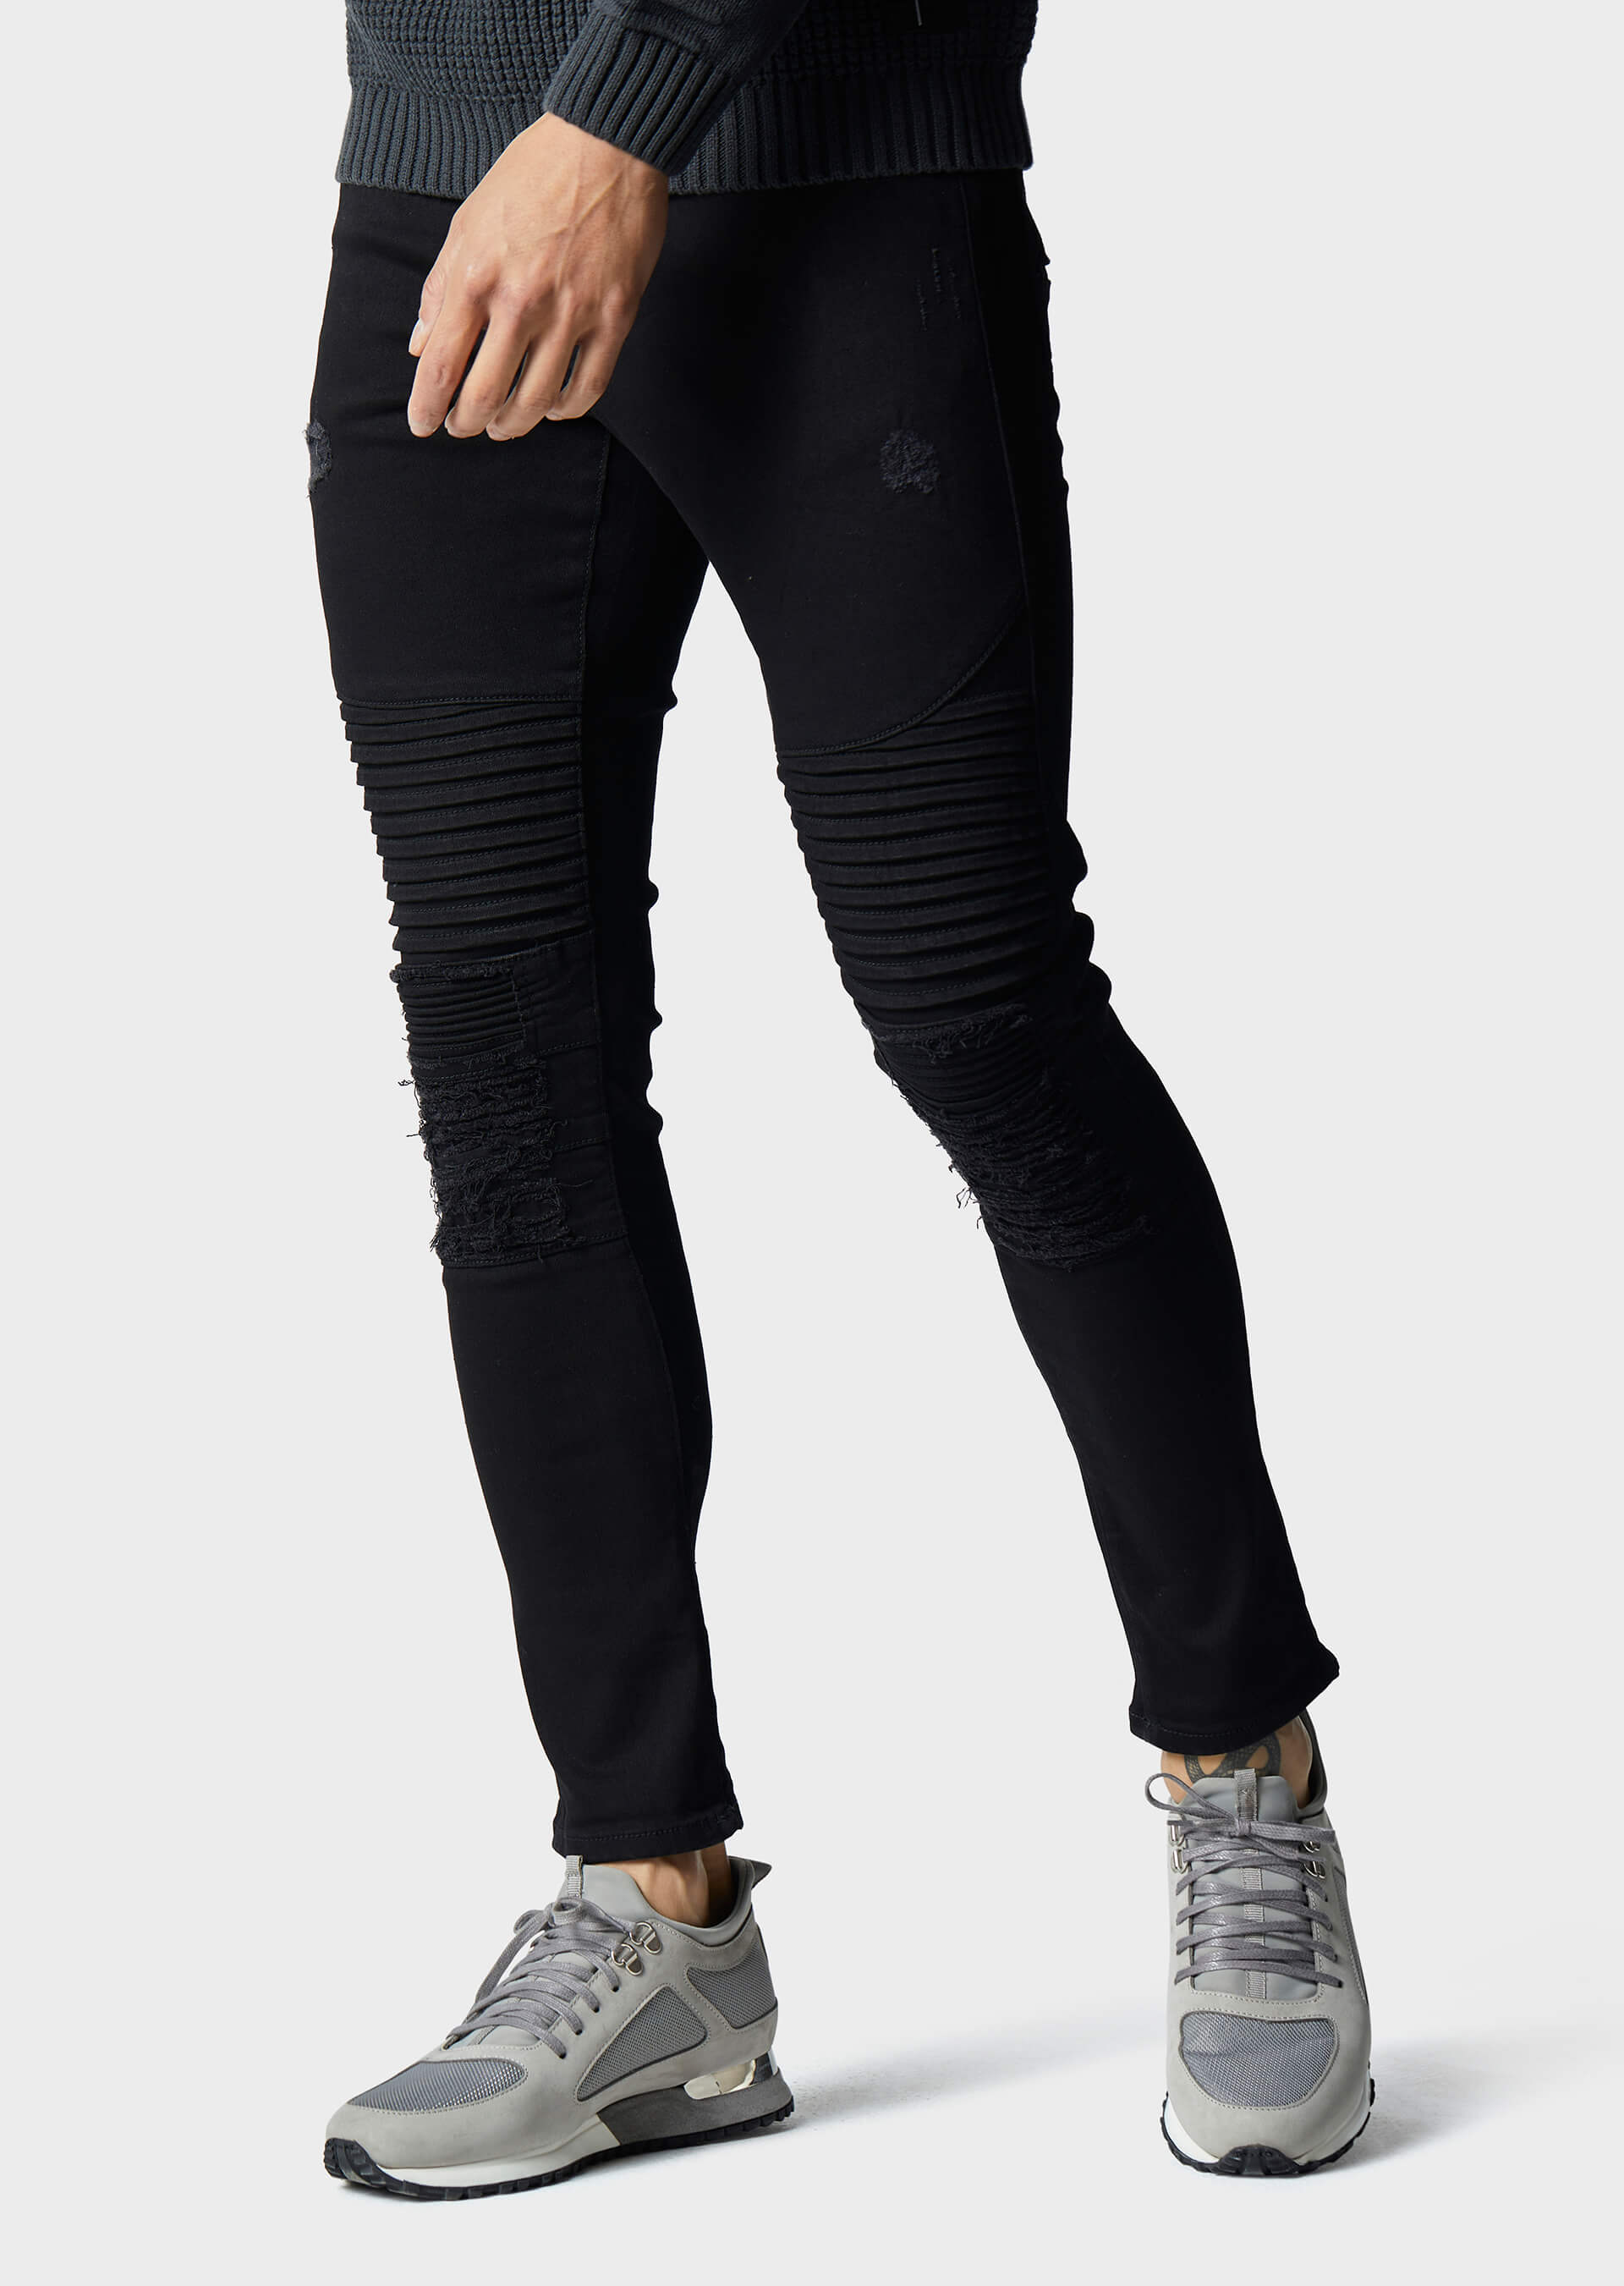 Brady Buell 383 Skinny Fit Jeans second_image